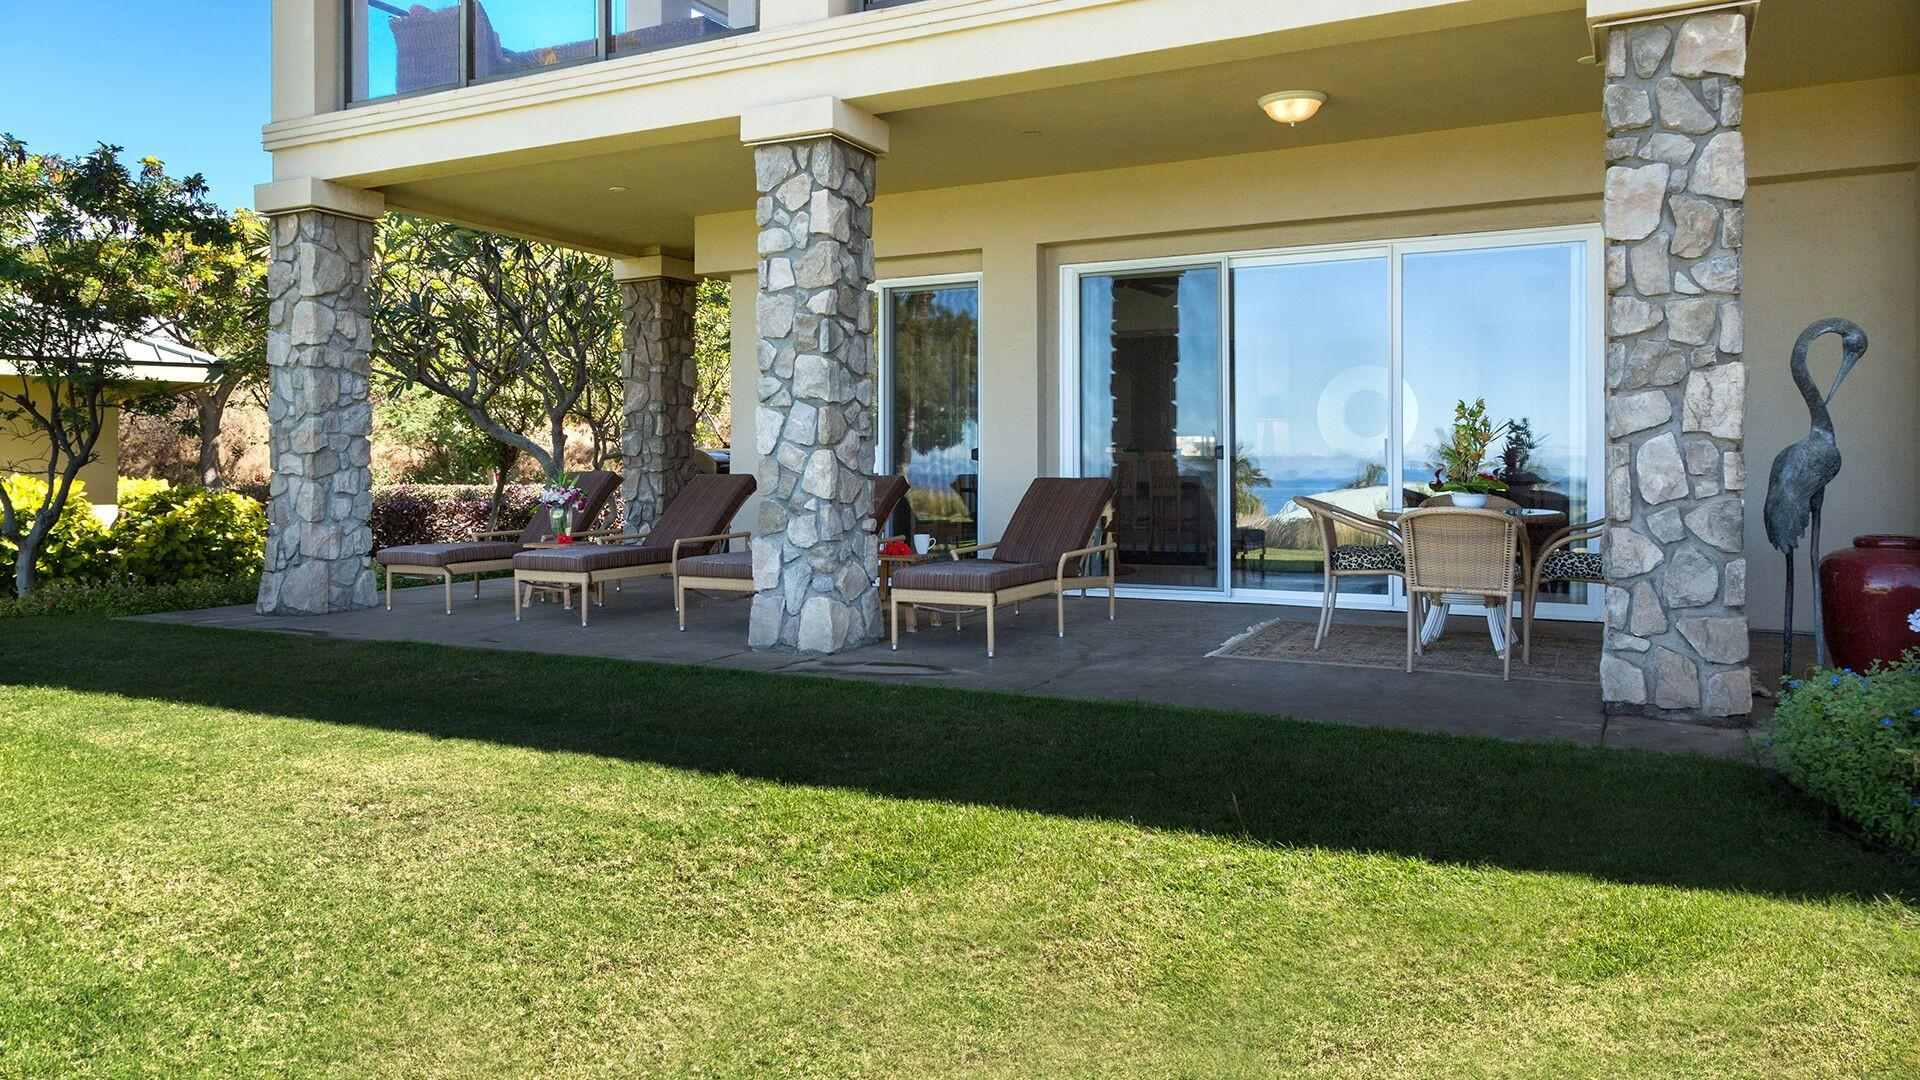 The expansive lanai provides plenty of room for the entire family to relax and enjoy.